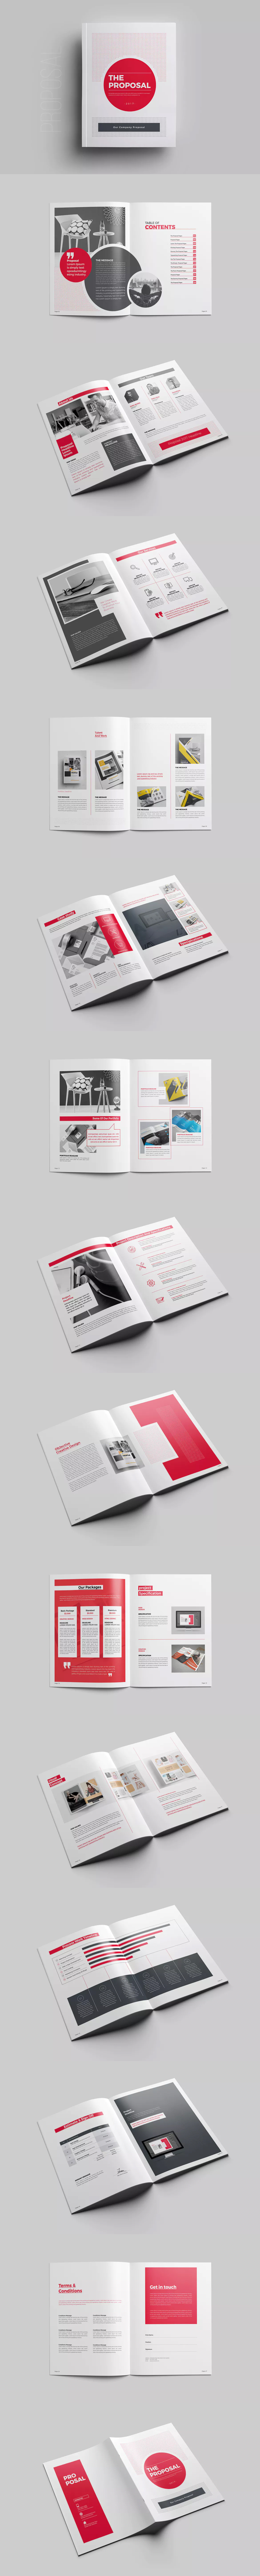 Proposal Template InDesign INDD - A4 & US Letter Size | Proposal ...